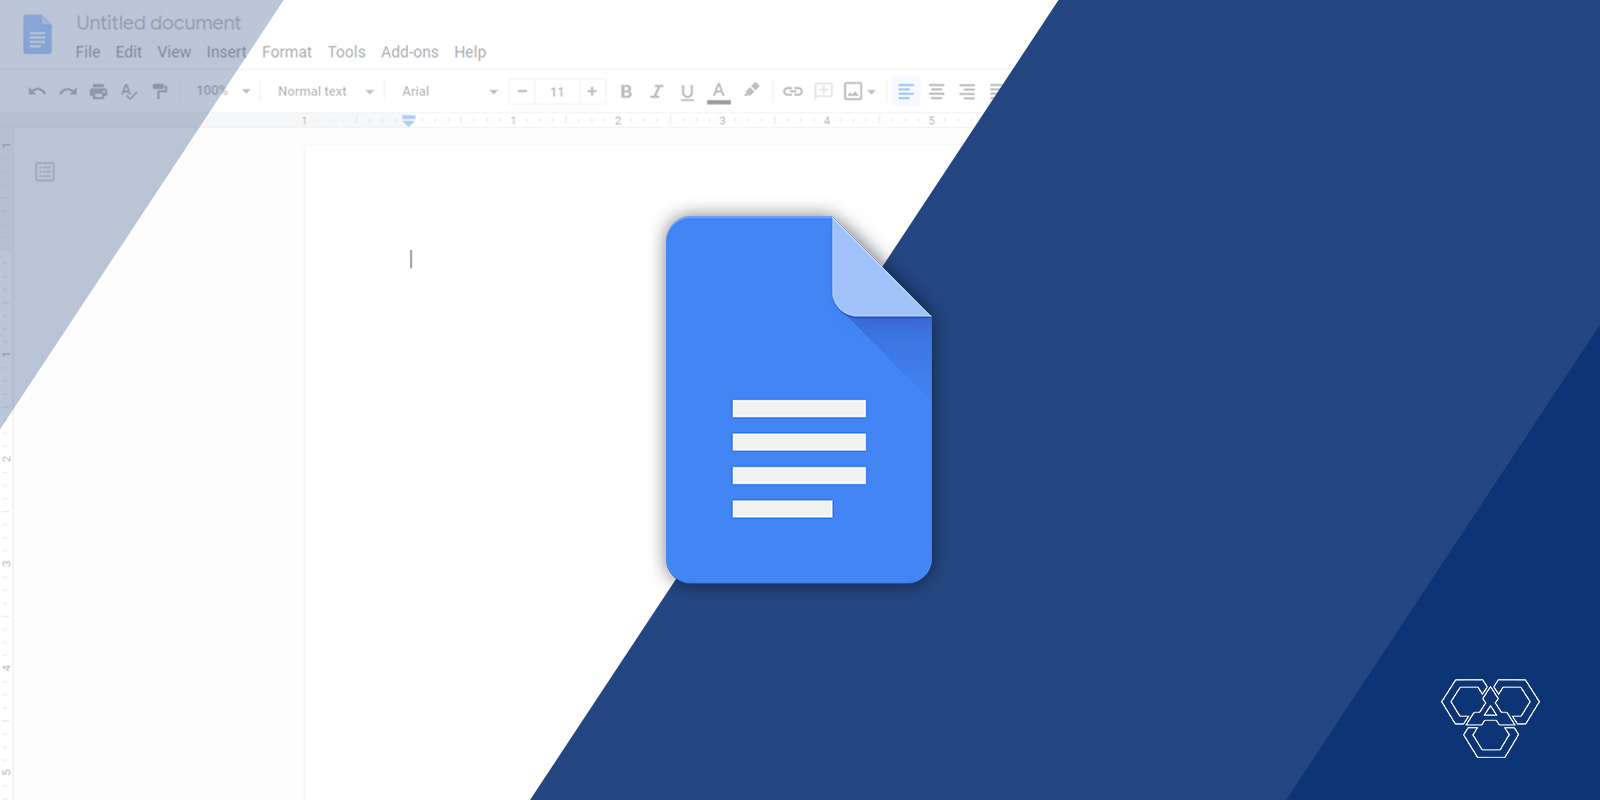 How to change the page color in a Google Docs